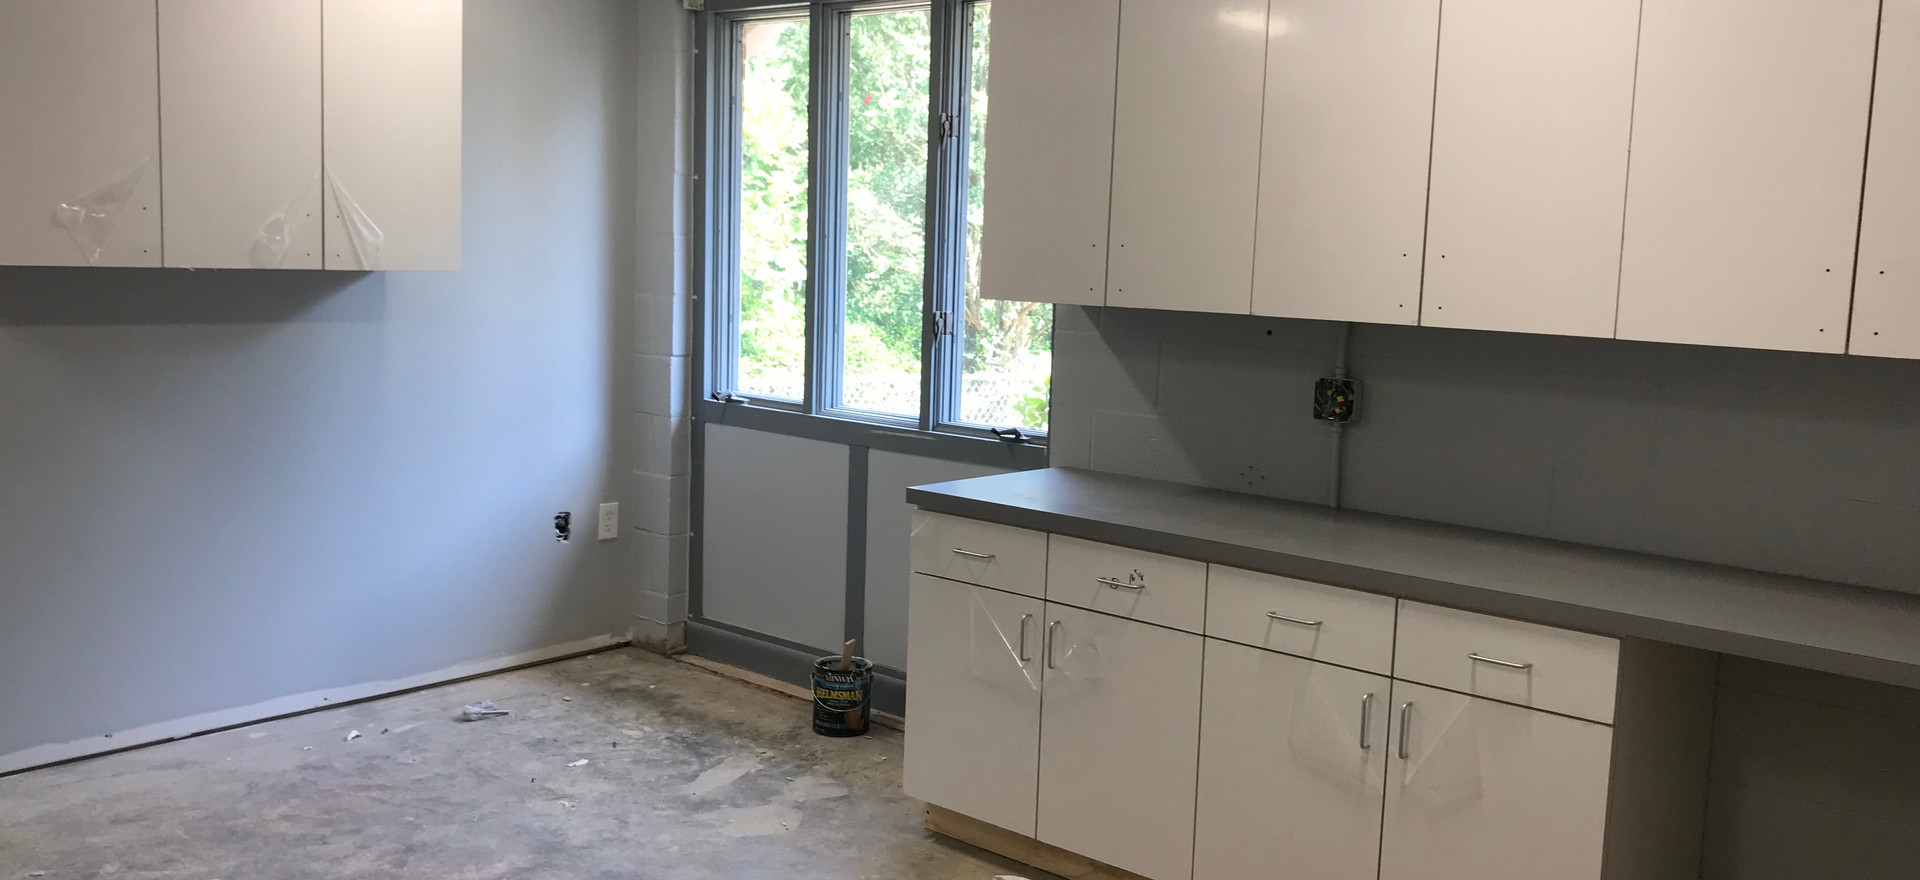 Painting and Cabinetry